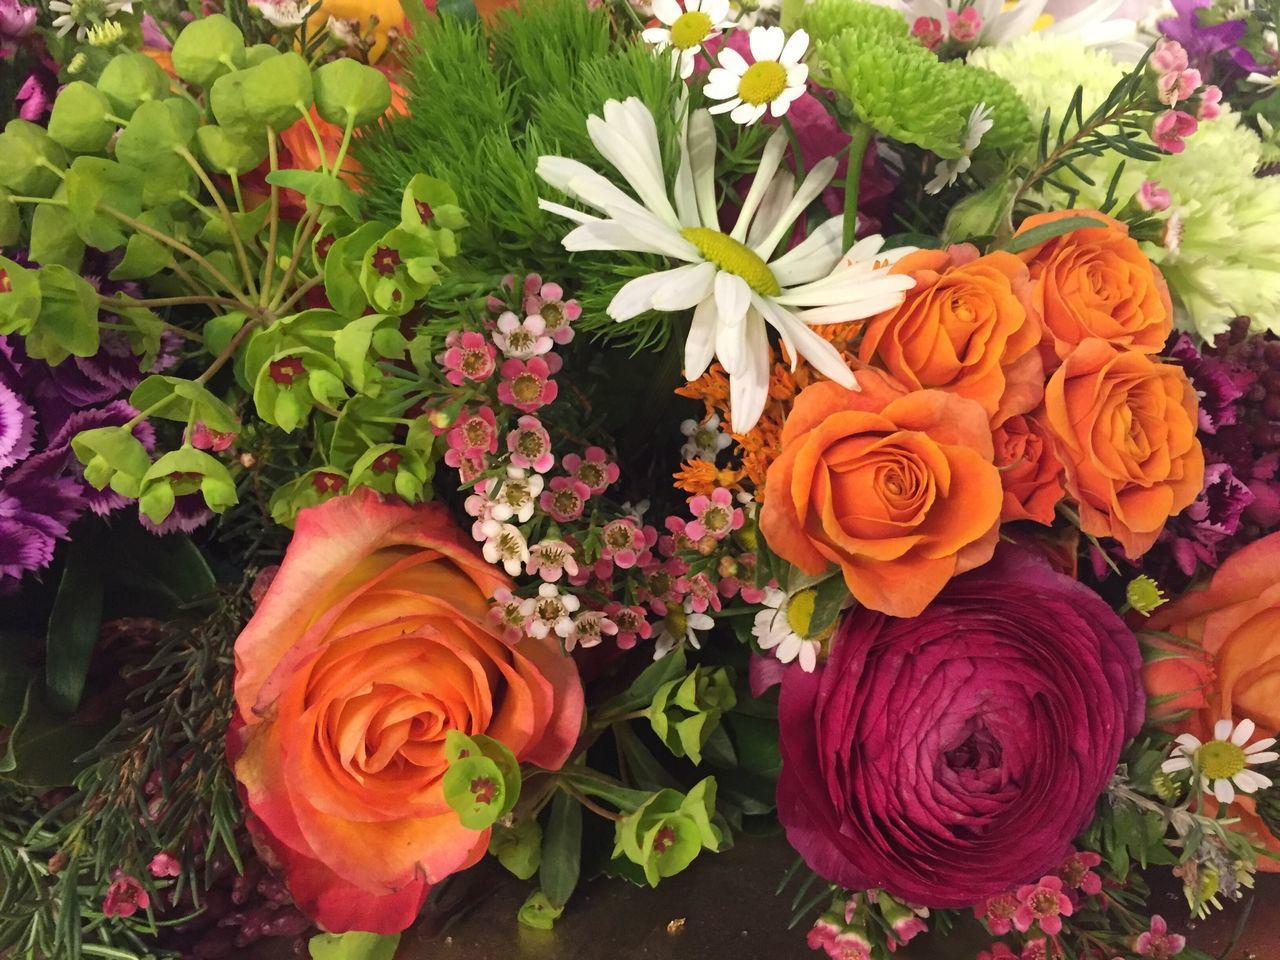 Flower bouquet with orange roses Flower Fragility Beauty In Nature Freshness Nature Petal Multi Colored Plant Flower Head Leaf Bouquet Growth No People Close-up Outdoors Day Gerbera Daisy Flower Market Dahlia Plant Flowerbed Nature Valentine's Day  Rose - Flower Flower Arrangement